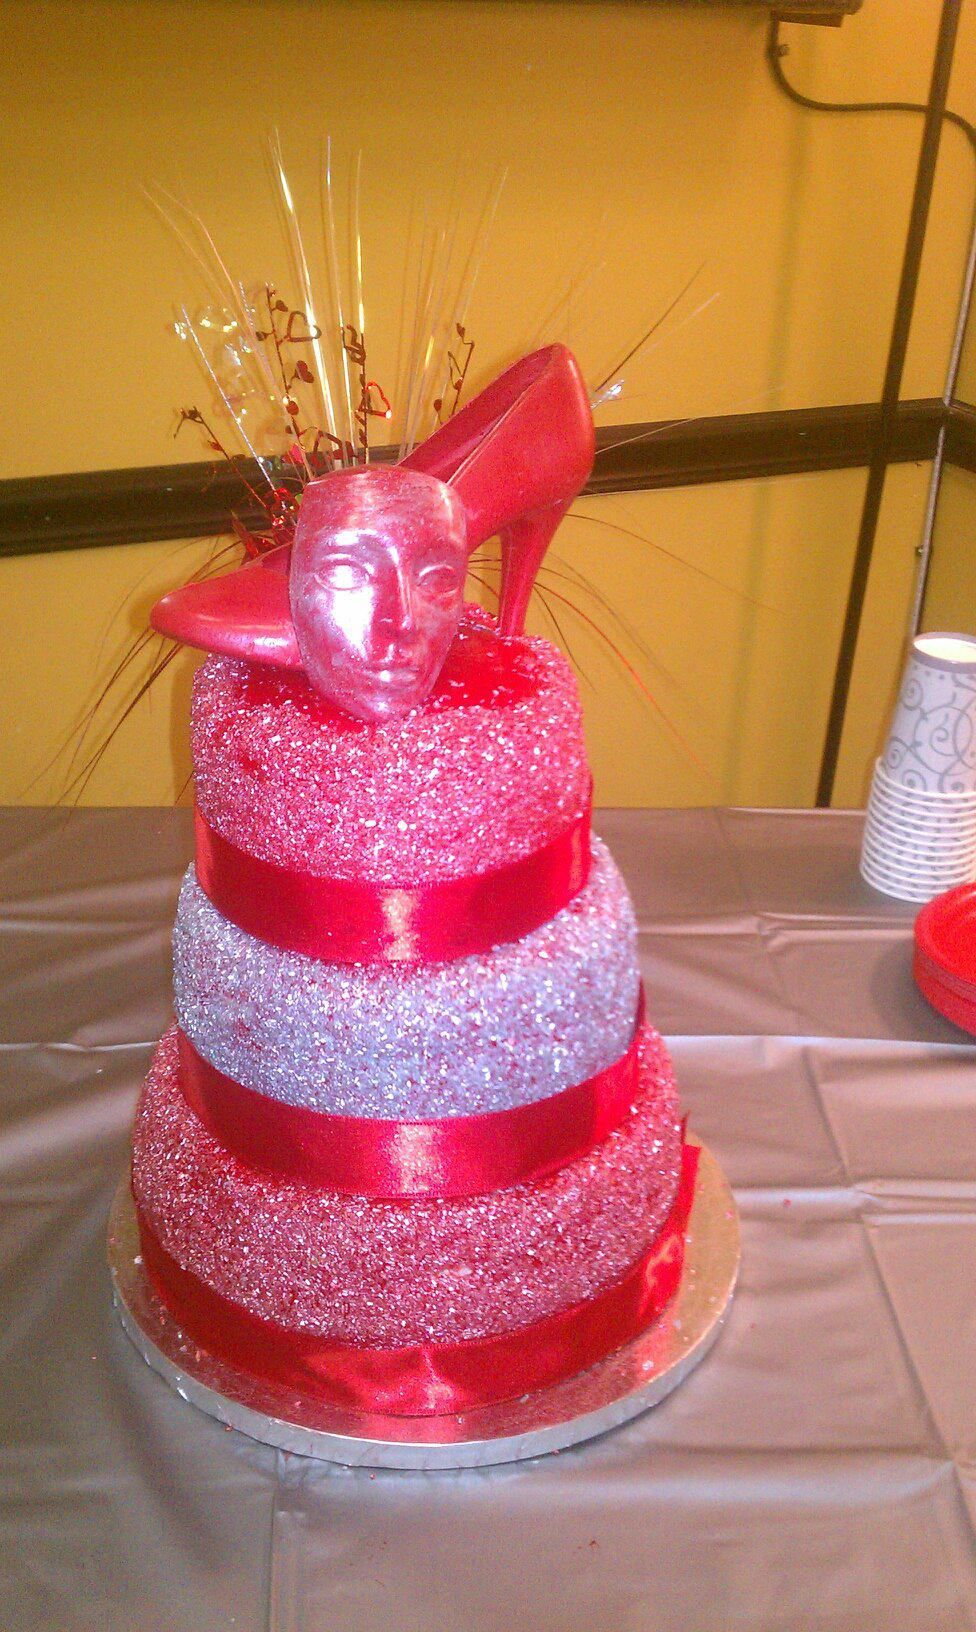 Red and silver tiered wedding cake topped with a red hell and mask